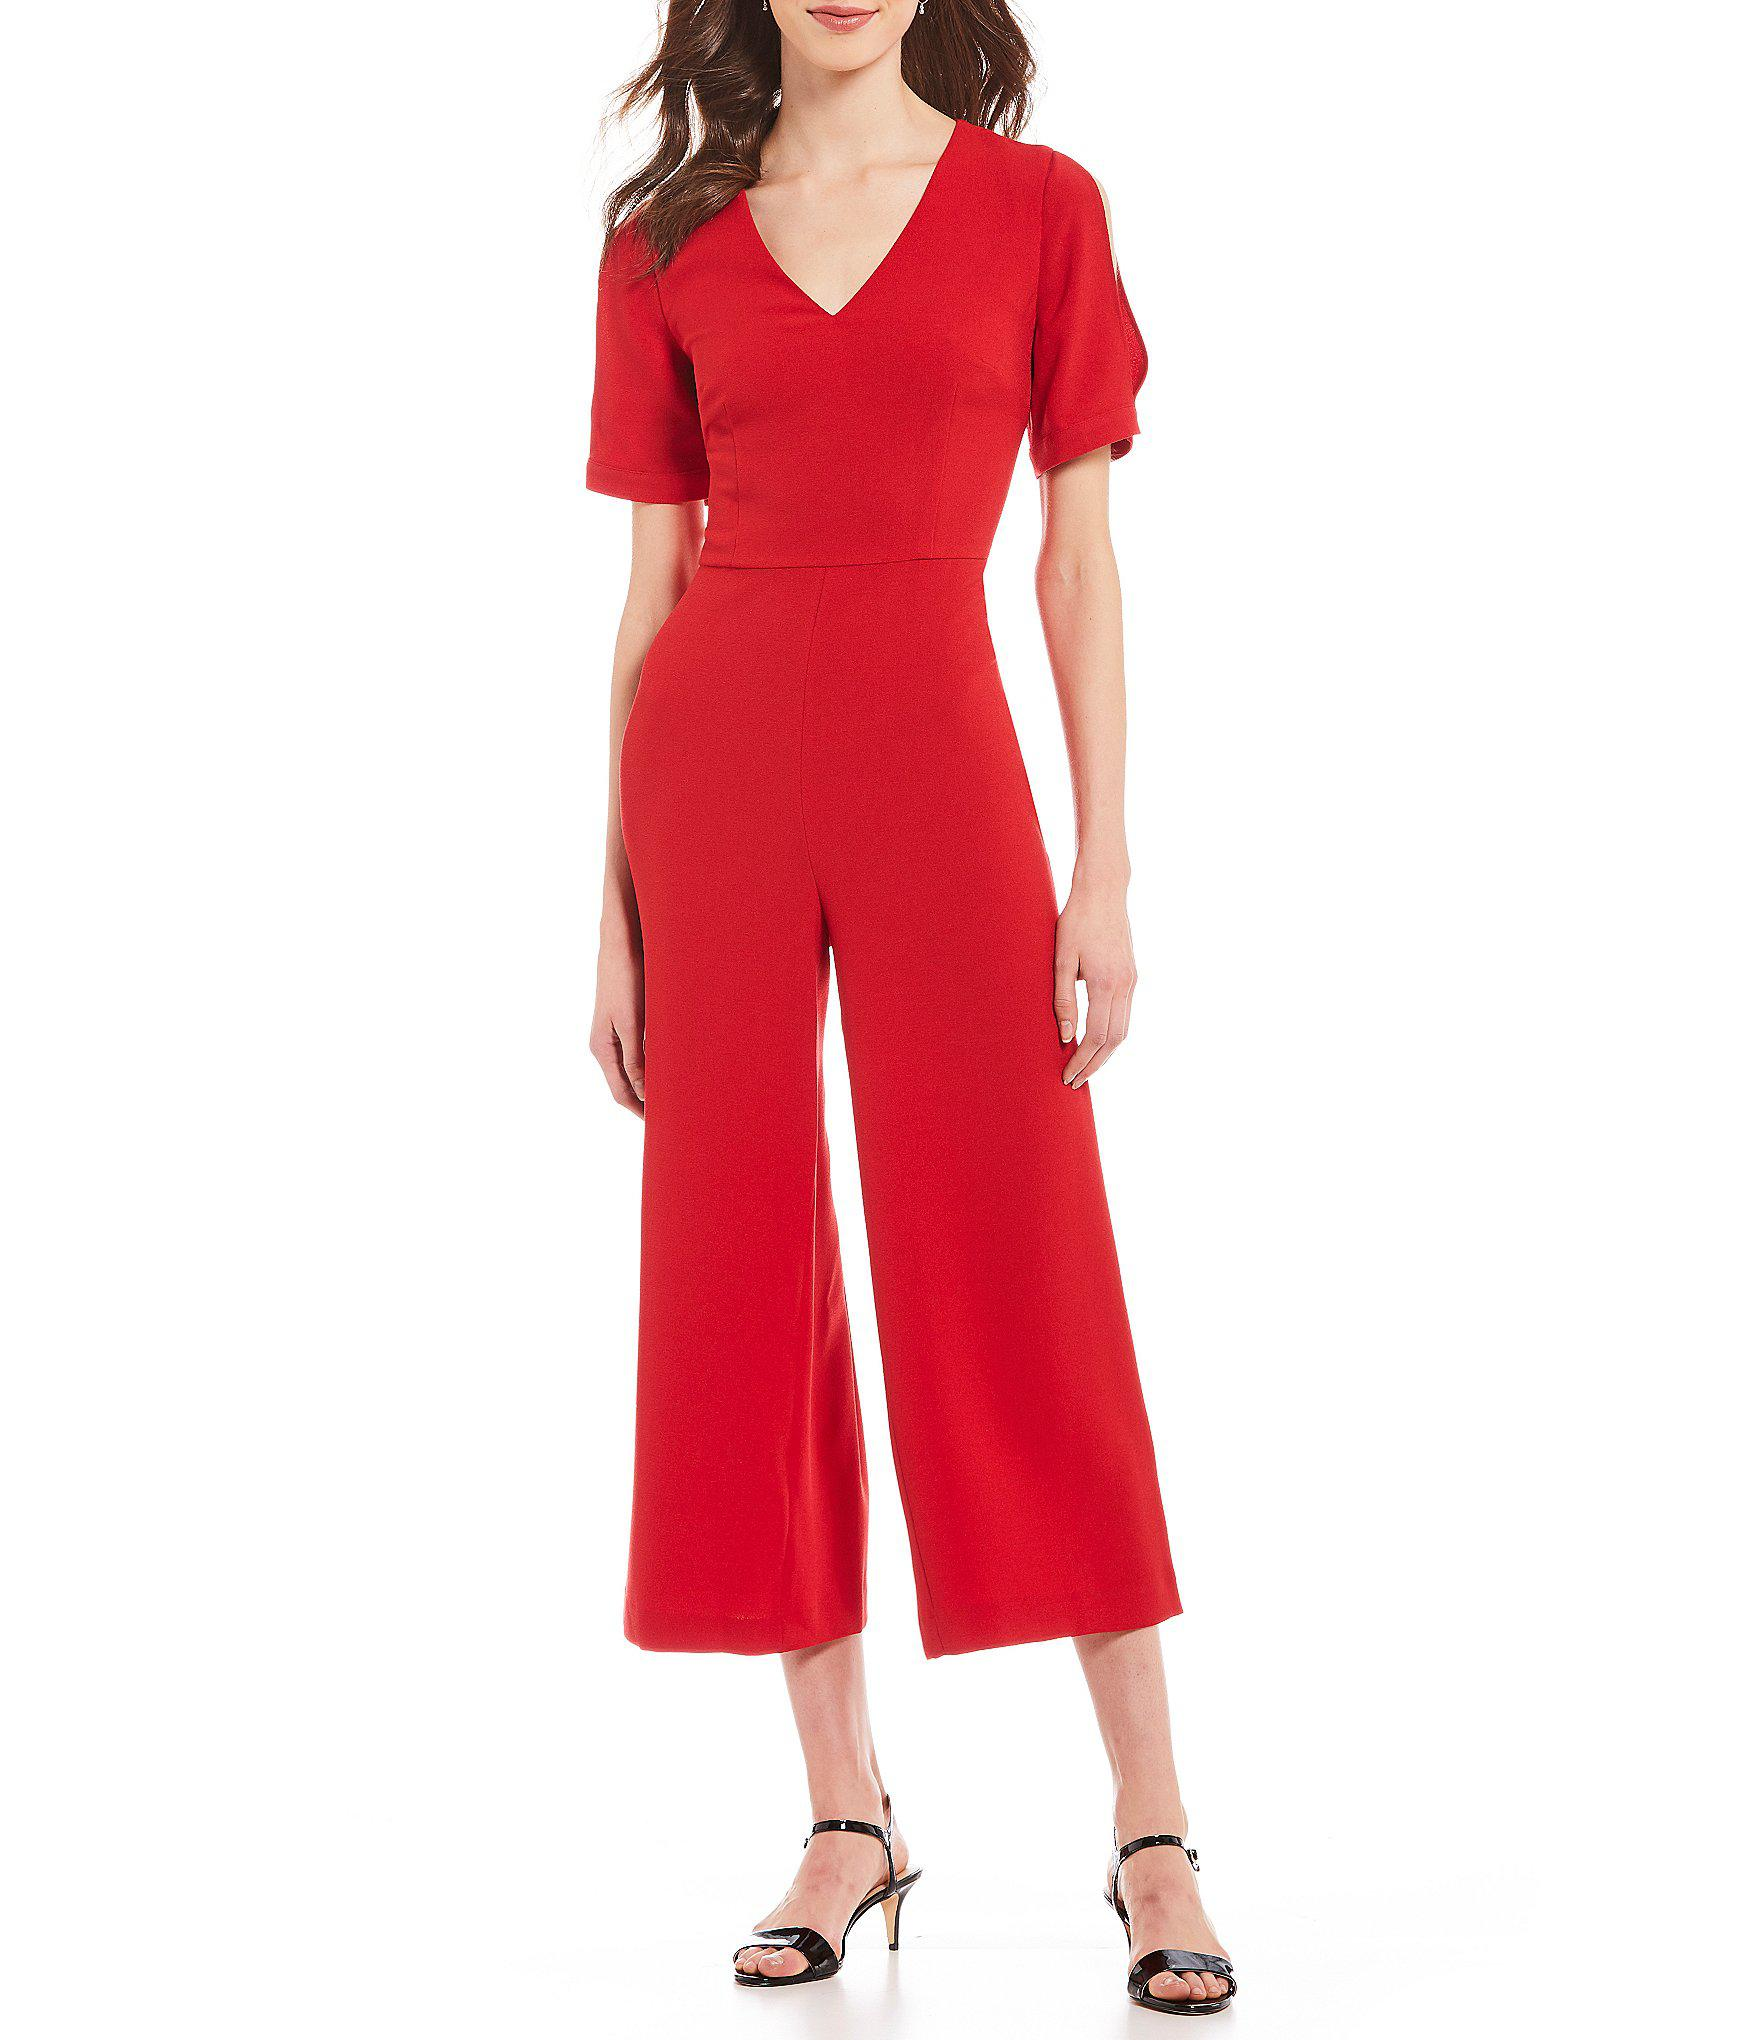 d39355b2543 Karl Lagerfeld. Women s Red Puffed Statement Shoulder V-neck Culotte  Jumpsuit